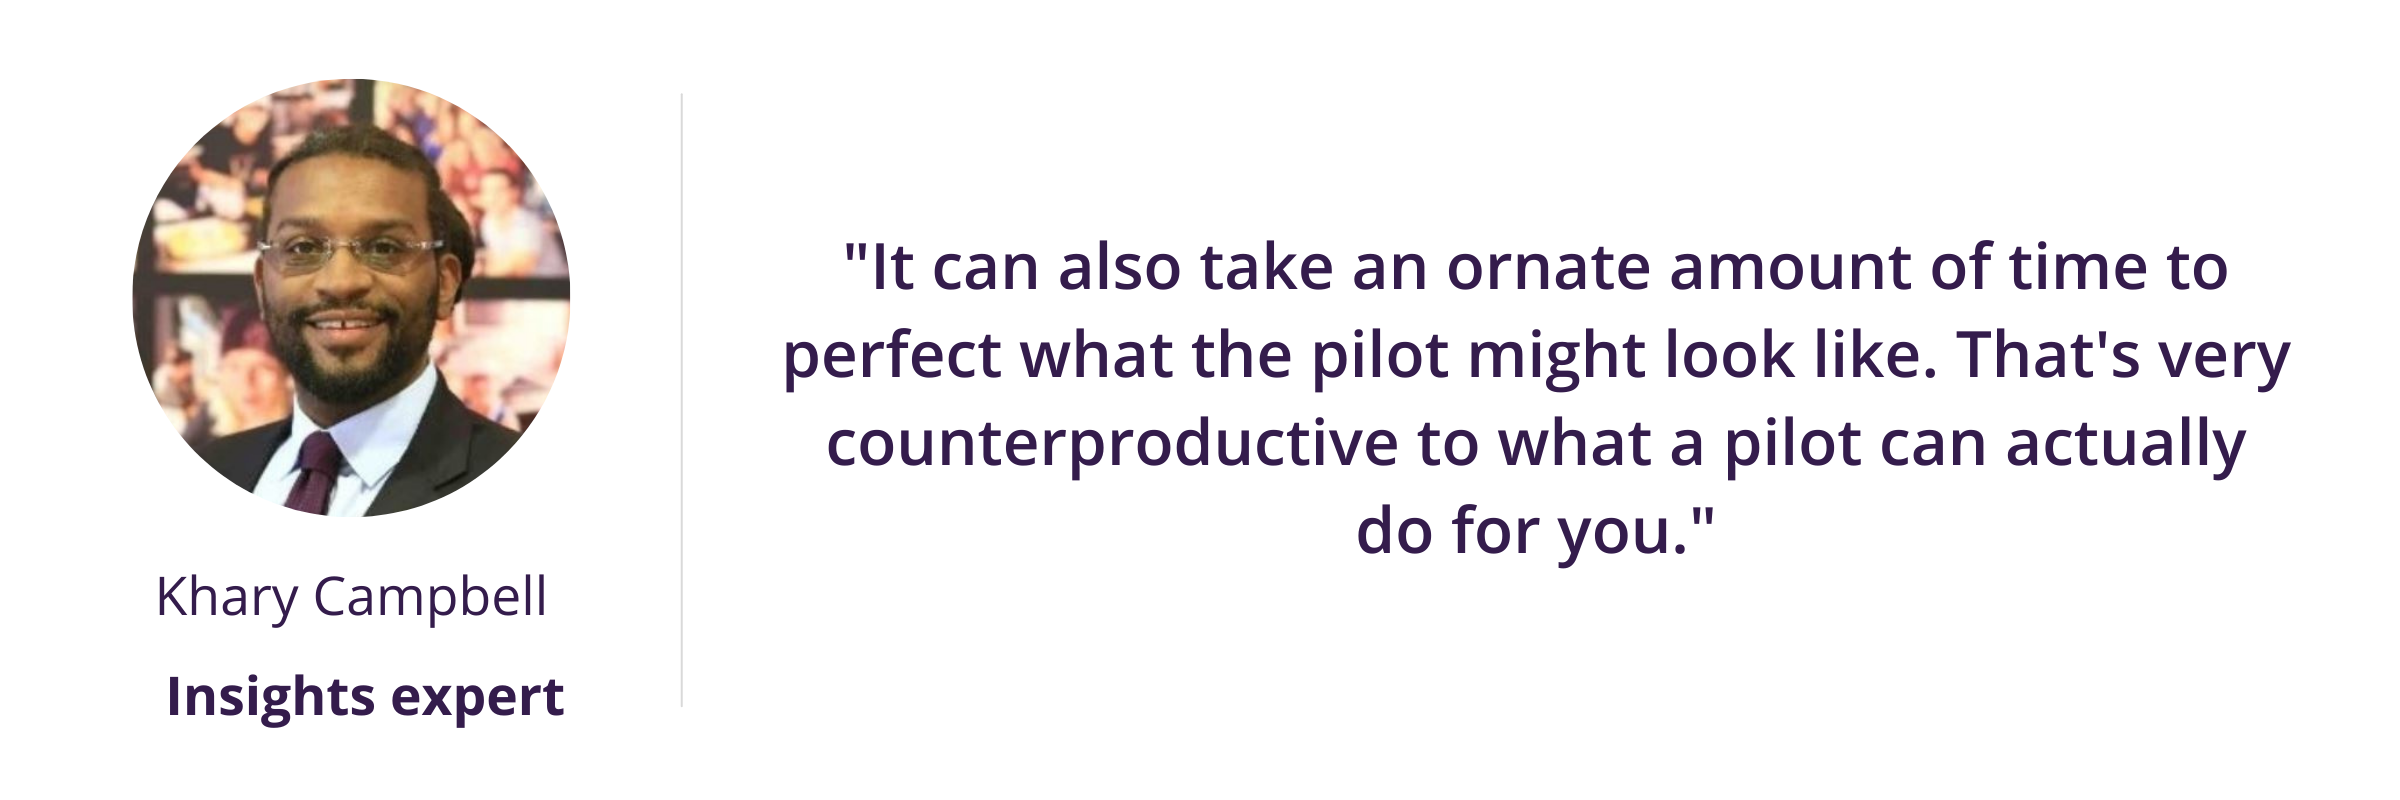 """Tech assessment and pilots - """"It can also take an ornate amount of time to perfect what the pilot might look like. That's very counterproductive to what a pilot can actually do for you."""""""